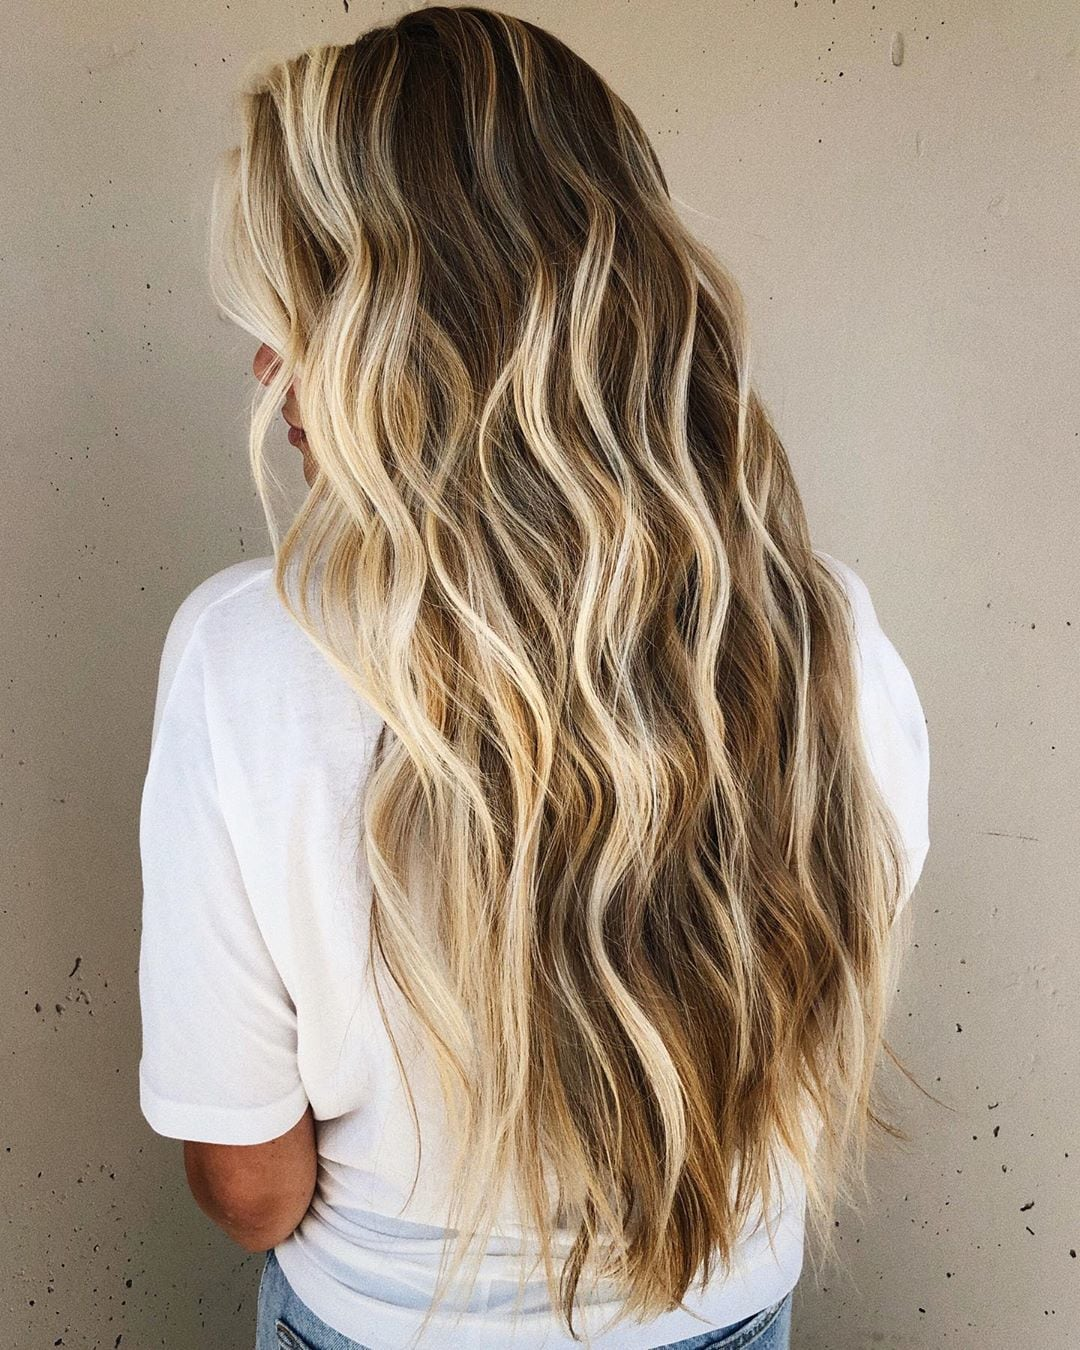 21 Beach Wave Hair Ideas For 2019 How To Get Perfect Beach